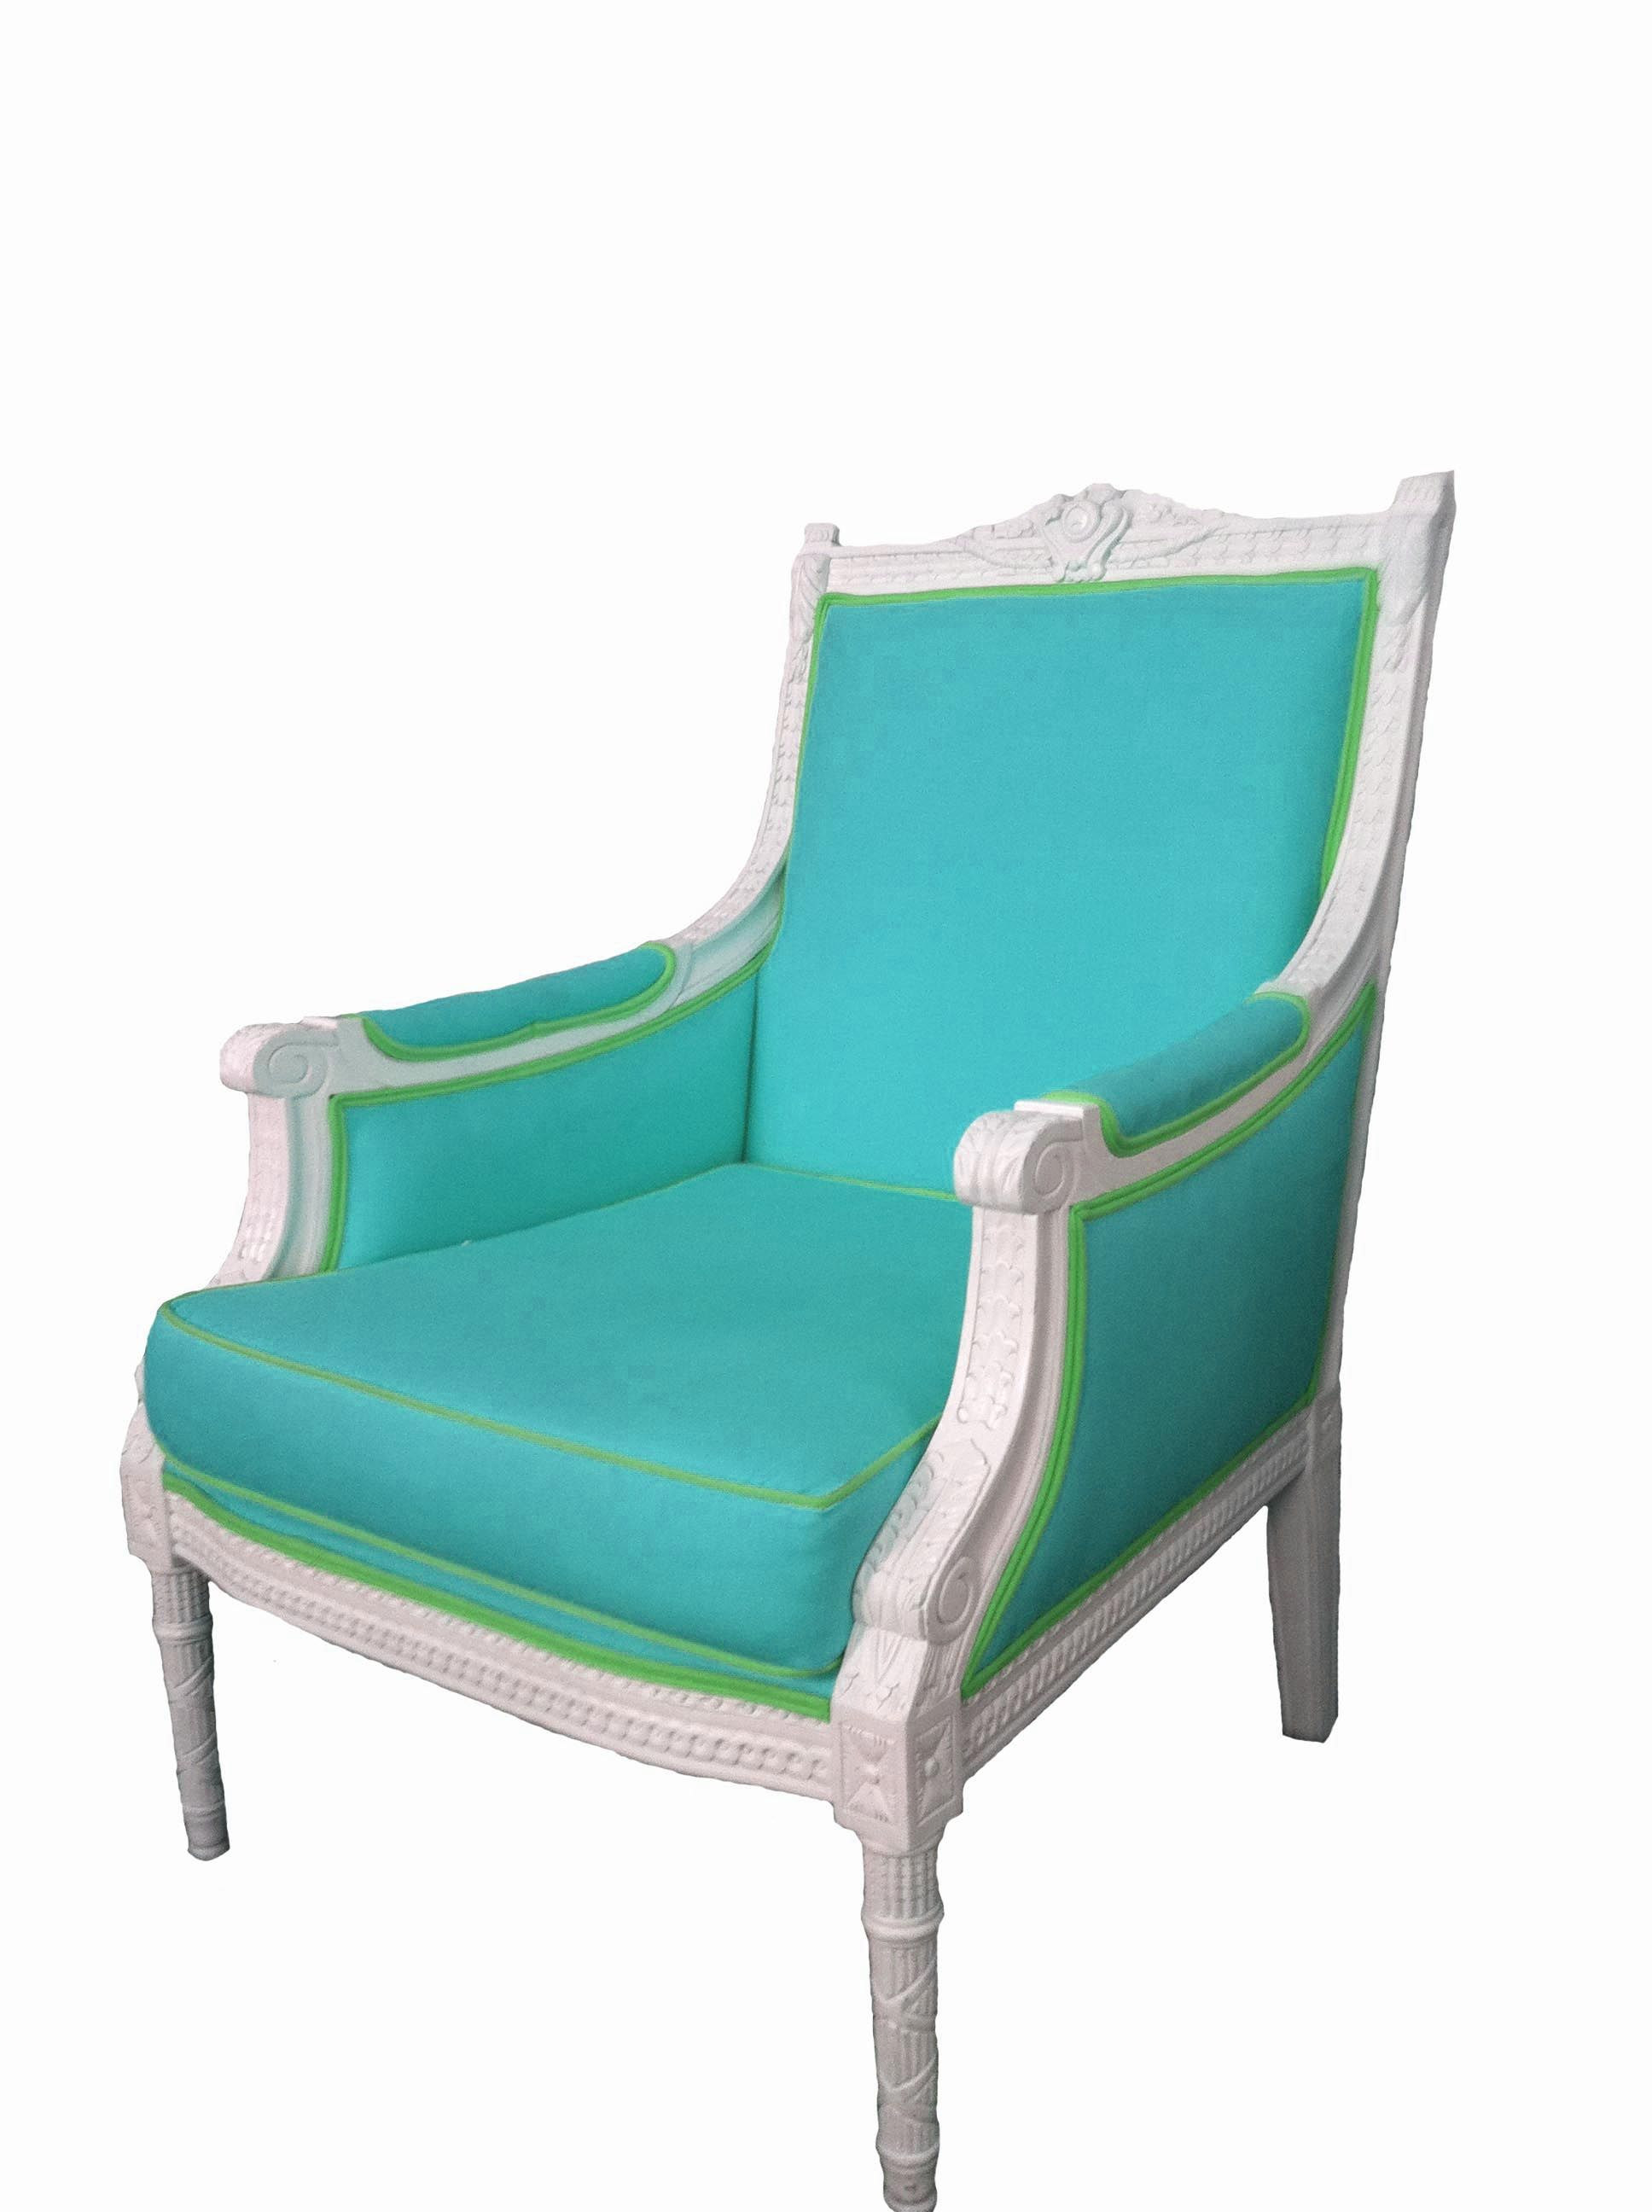 Turquoise Side Chair Covers North Yorkshire Furnishings Pinterest